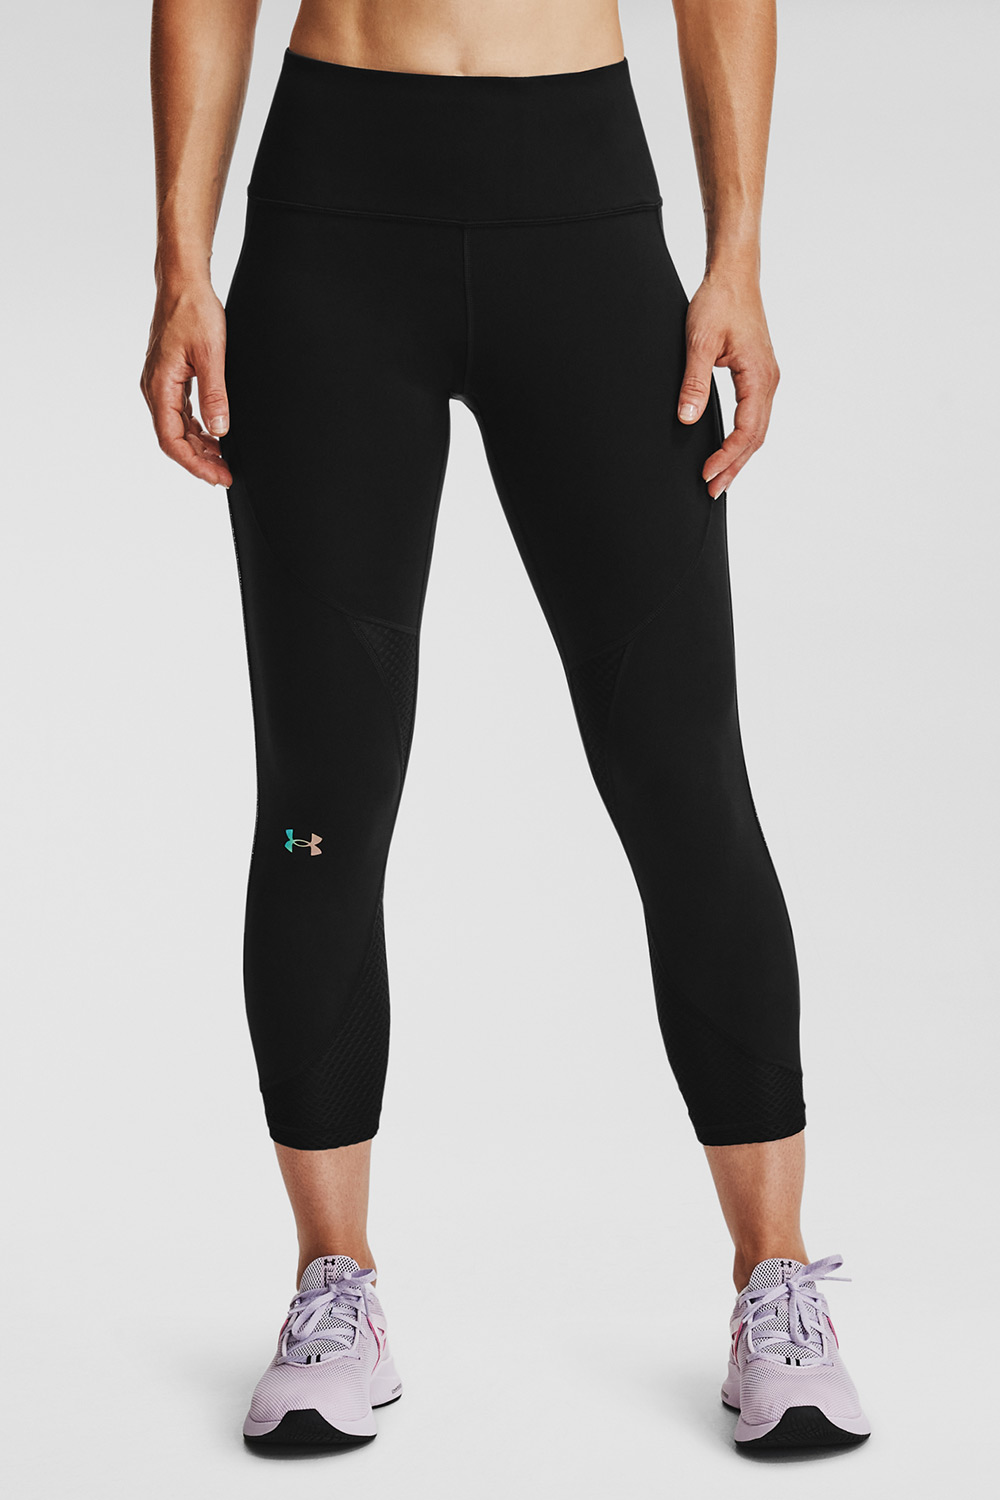 Under Armour Rush Active sport leggings